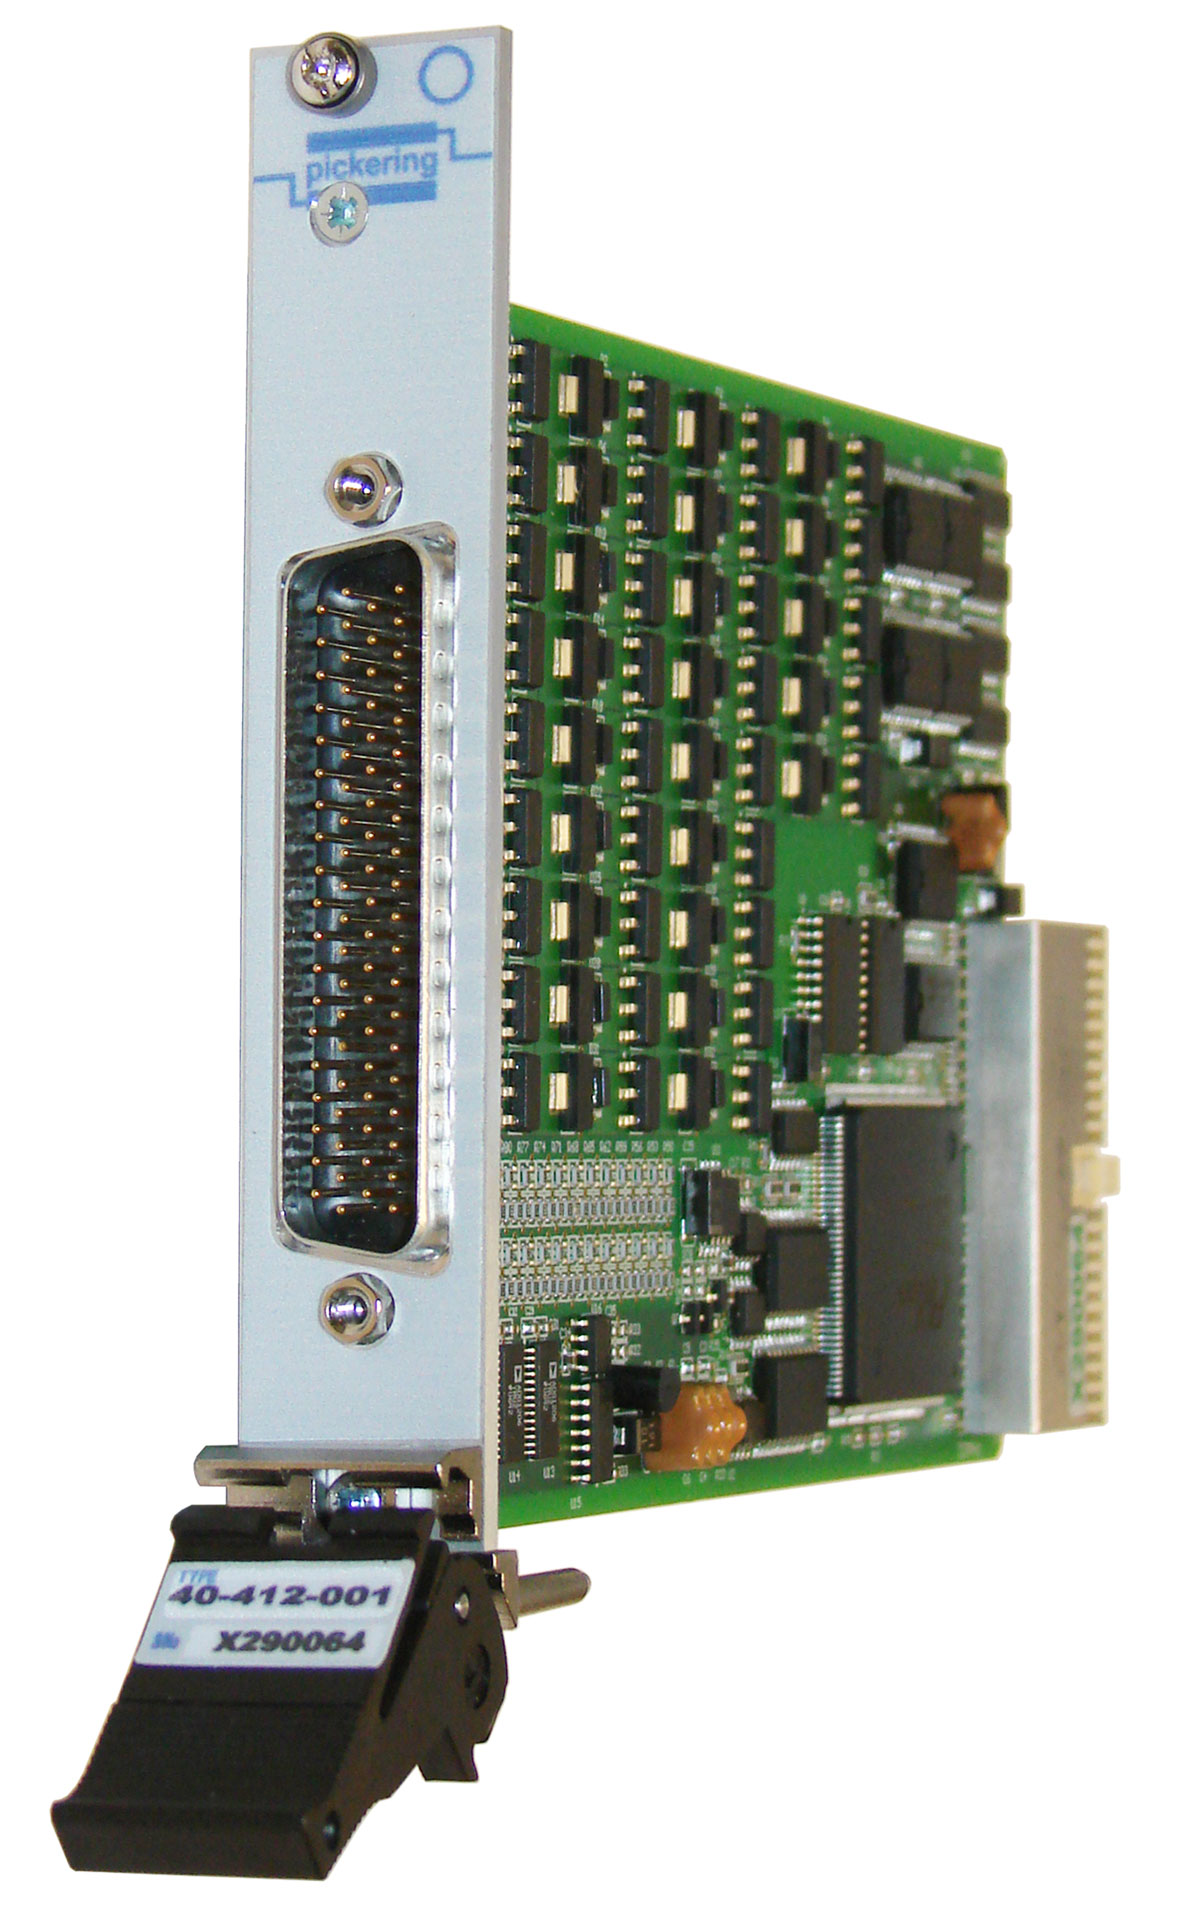 Pickering's PXI Digital I/O Module